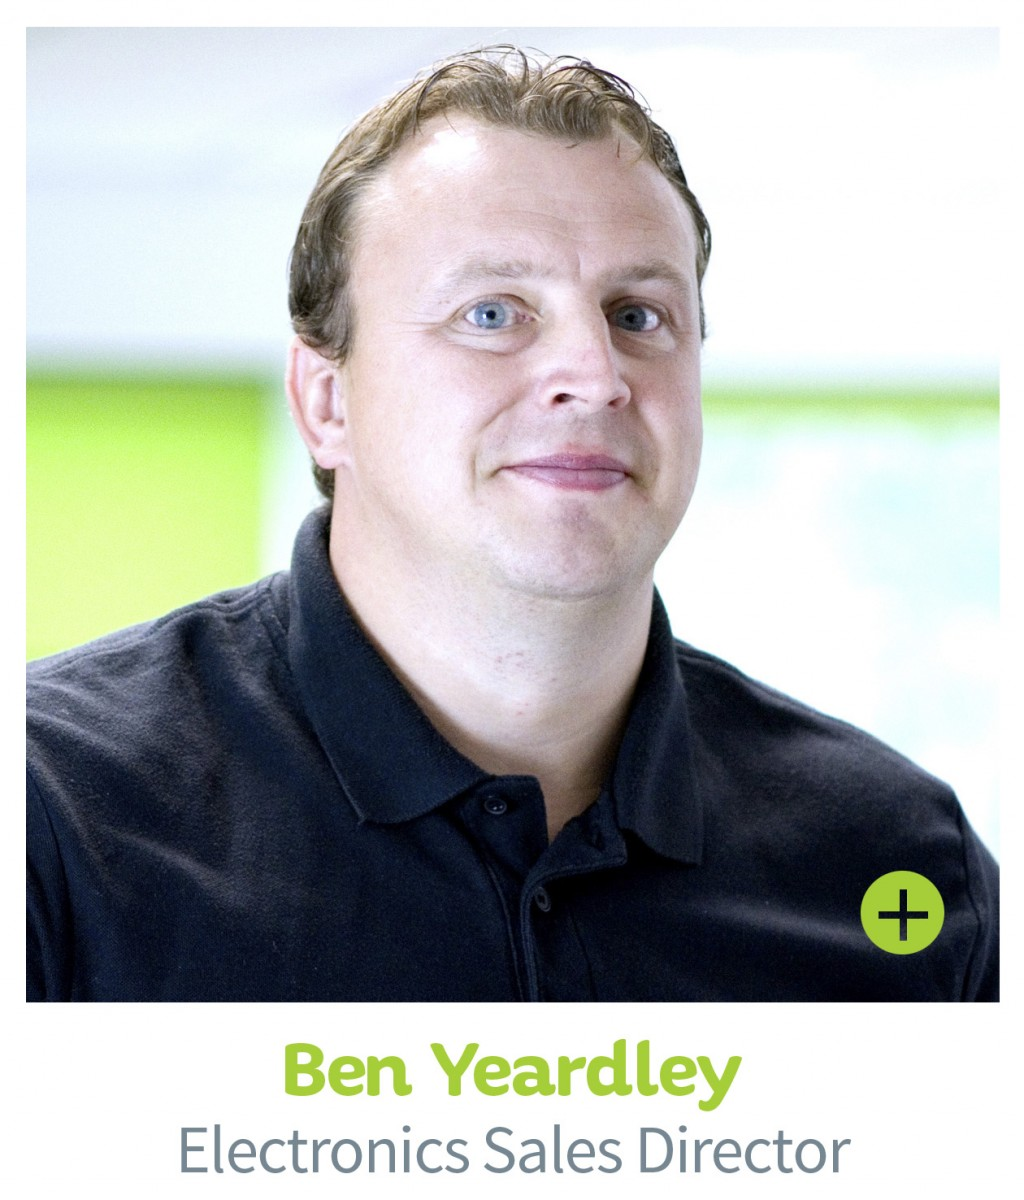 Ben Yeardley, CIE